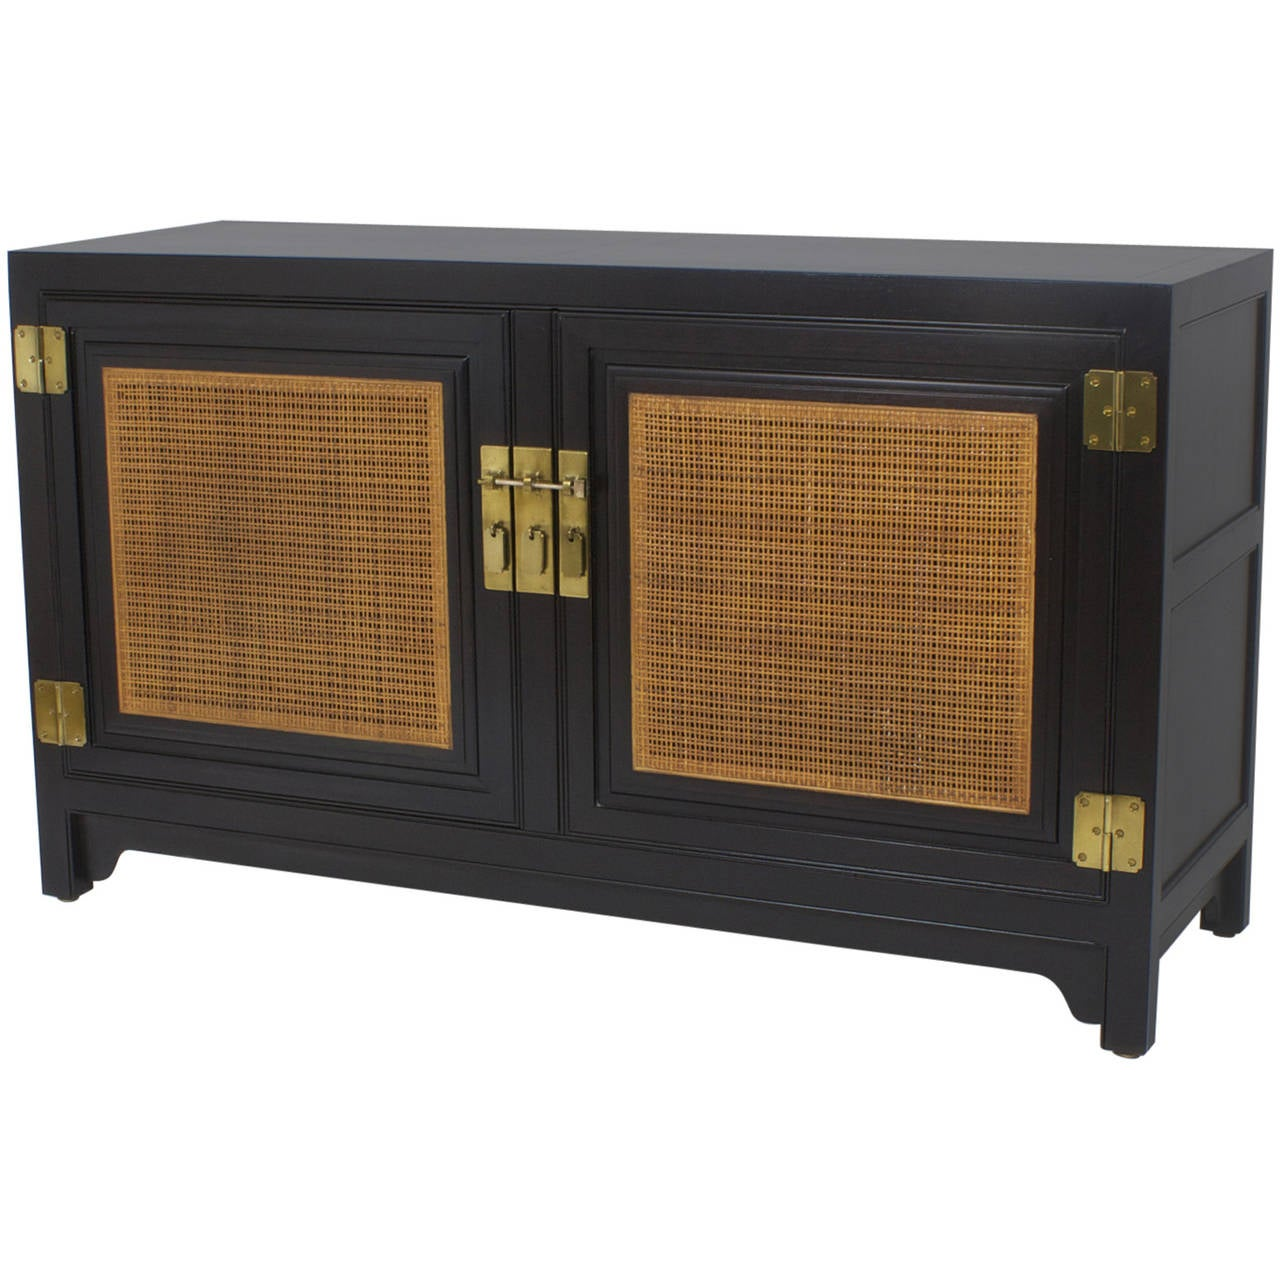 Midcentury rattan sideboard by baker at 1stdibs for Sideboard rattan